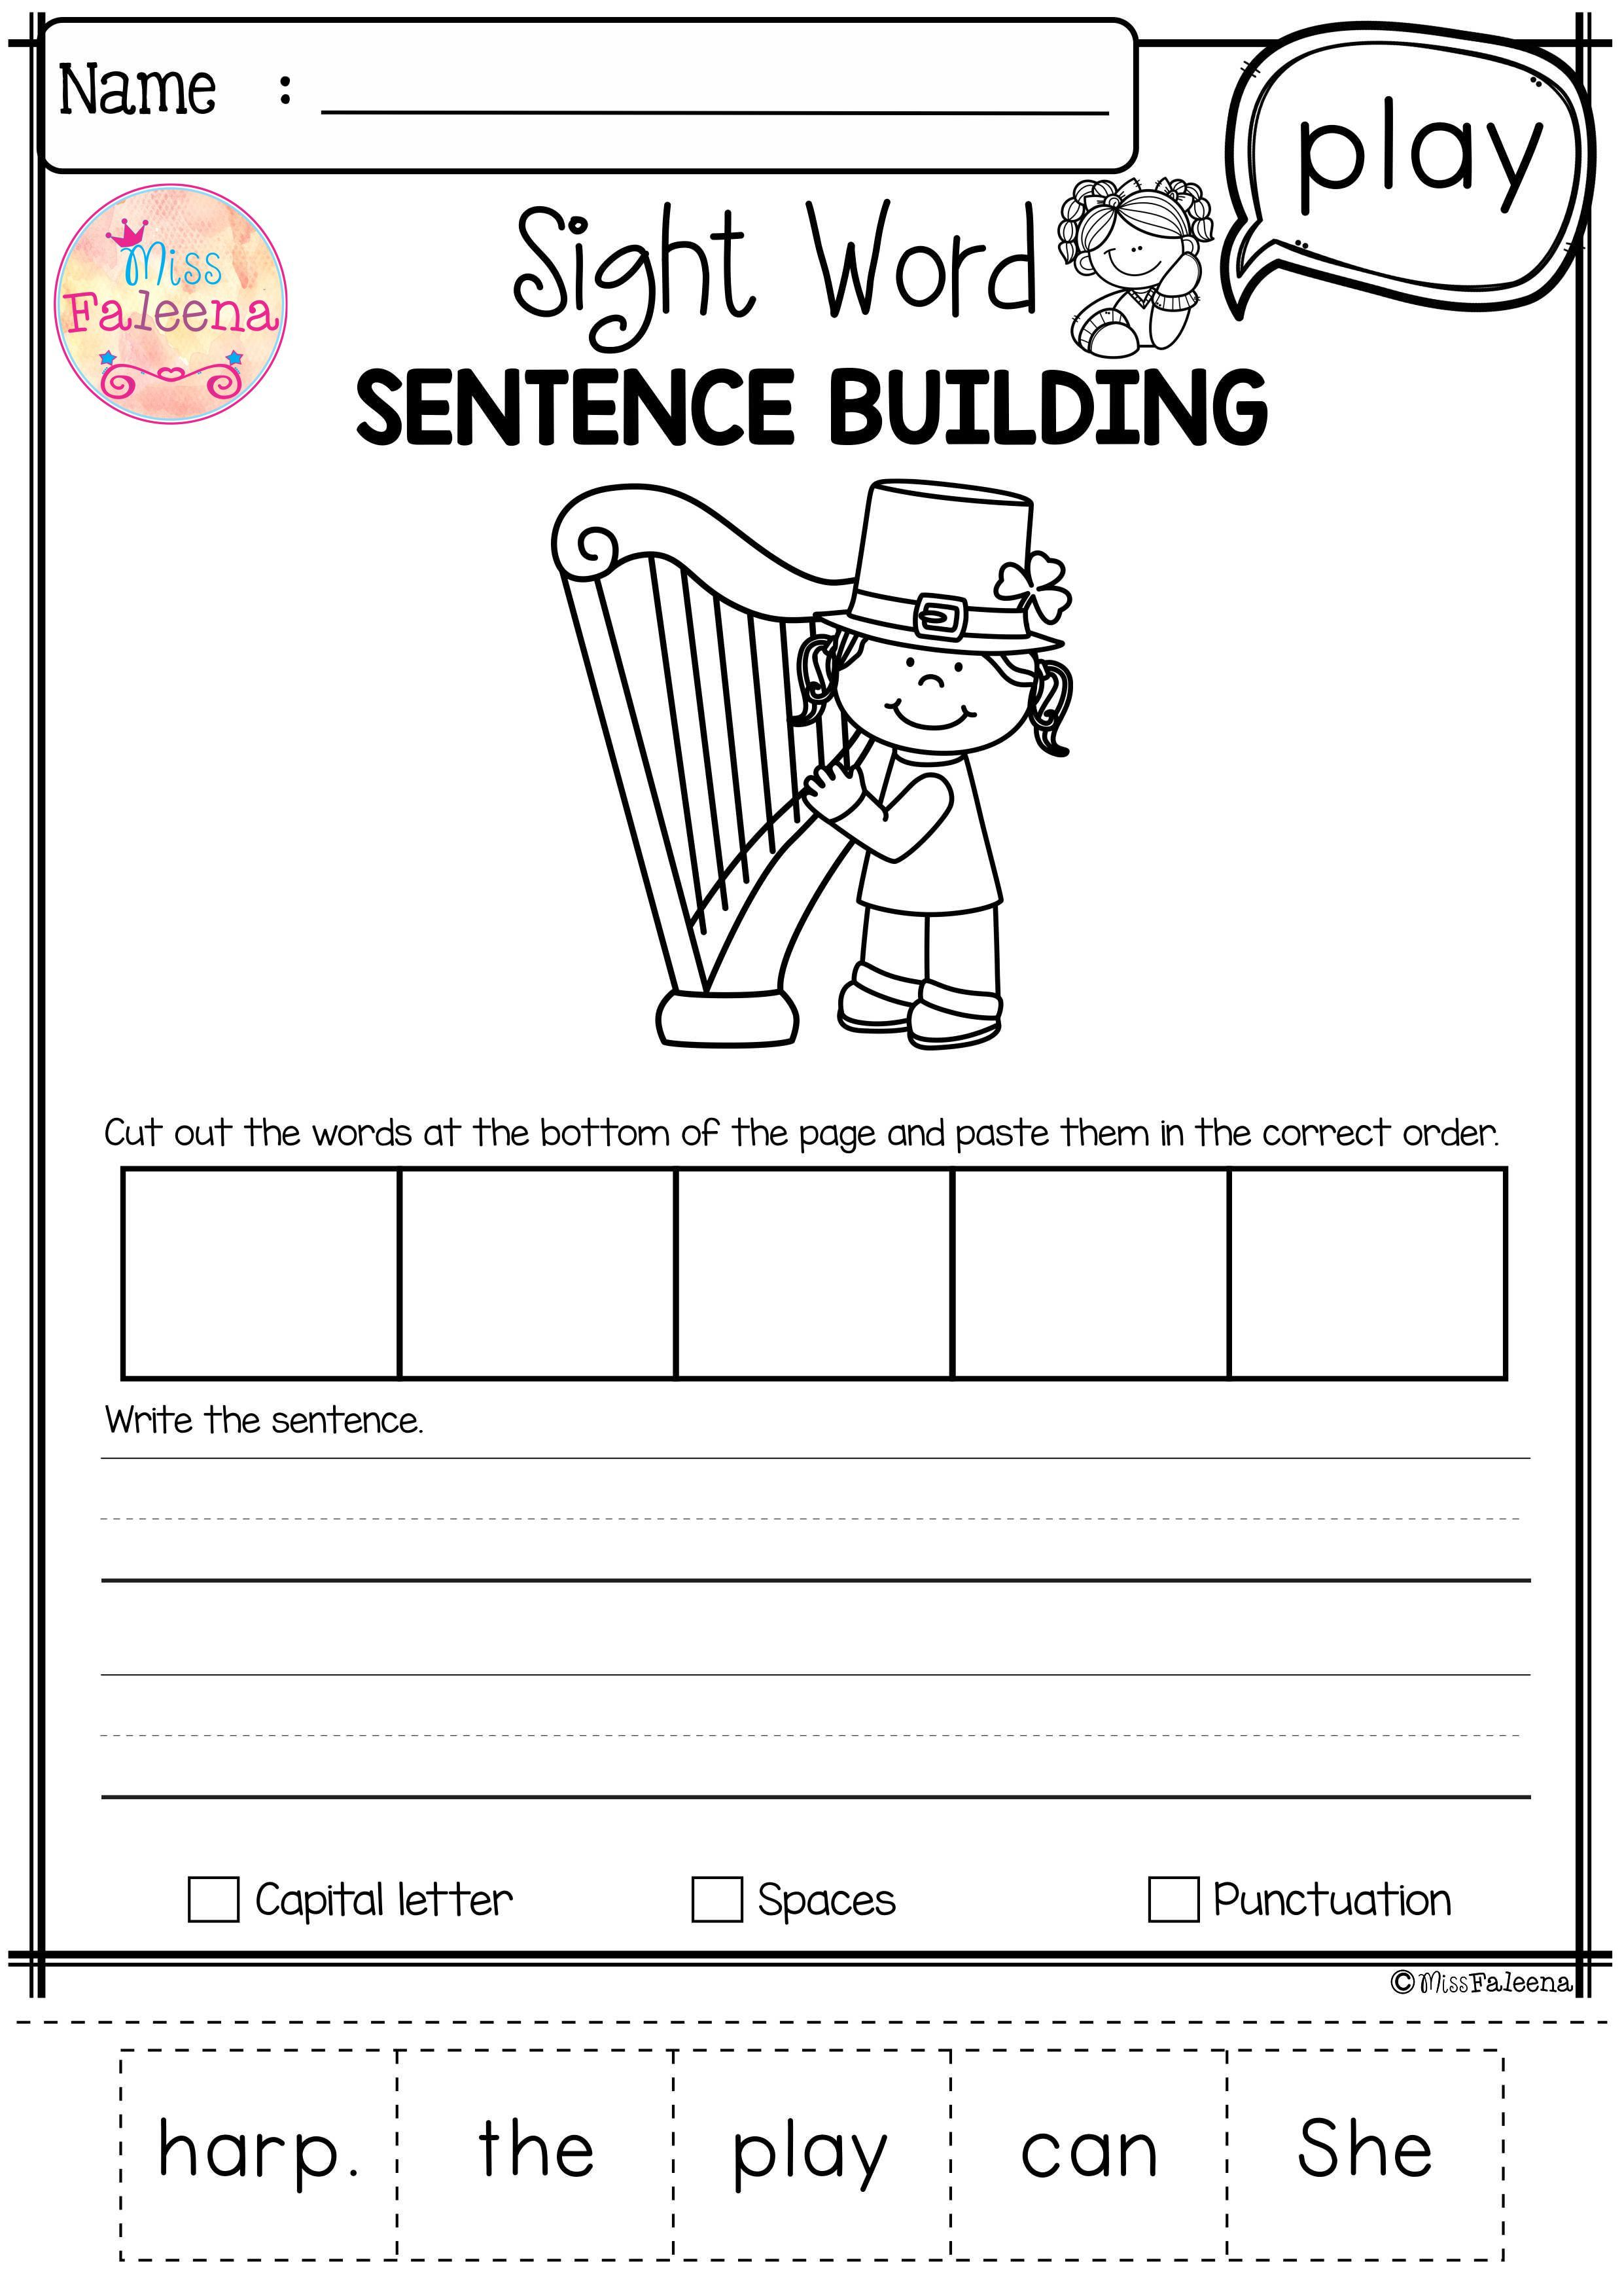 Sight Word Sentence Building Pre Primer Has 40 Pages Of Sentence Building Worksheets This Product Will T Sight Word Sentences Sentence Building Word Sentences [ 3508 x 2482 Pixel ]